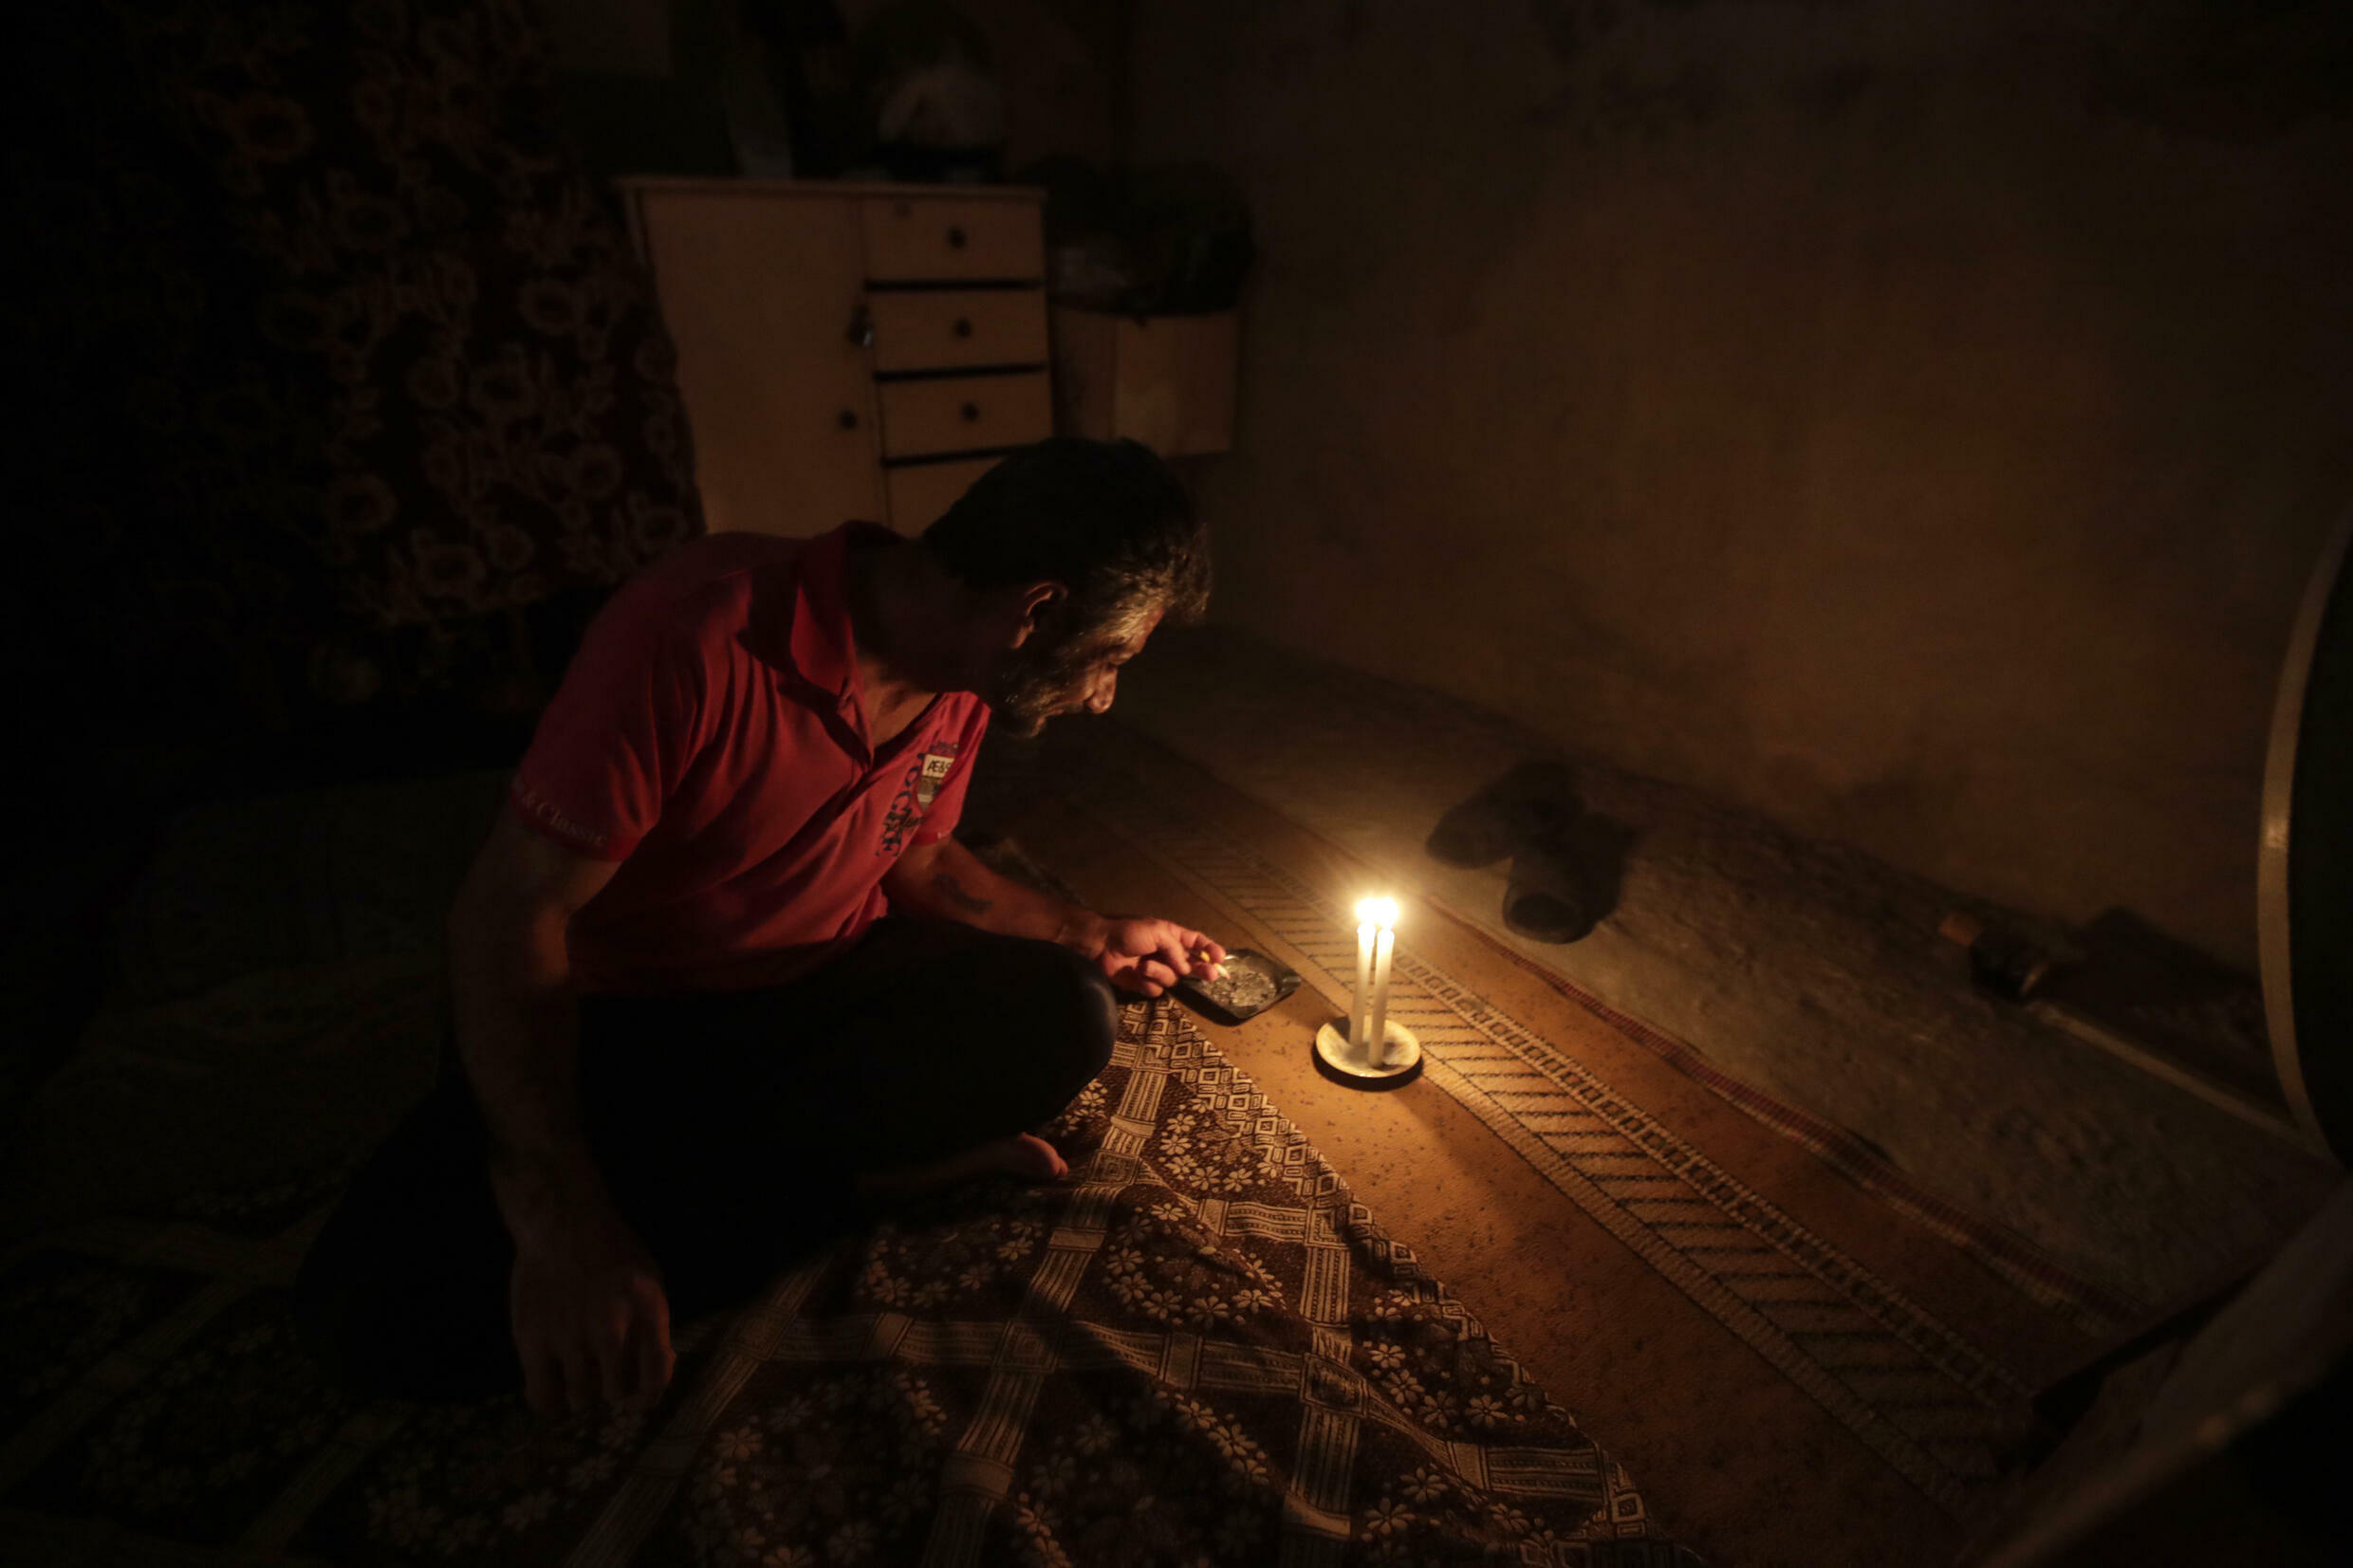 Power cuts lasting more than 22 hours a day have become the new norm in bankrupt Lebanon which is running out of everything from fuel and gas to medicine and bread